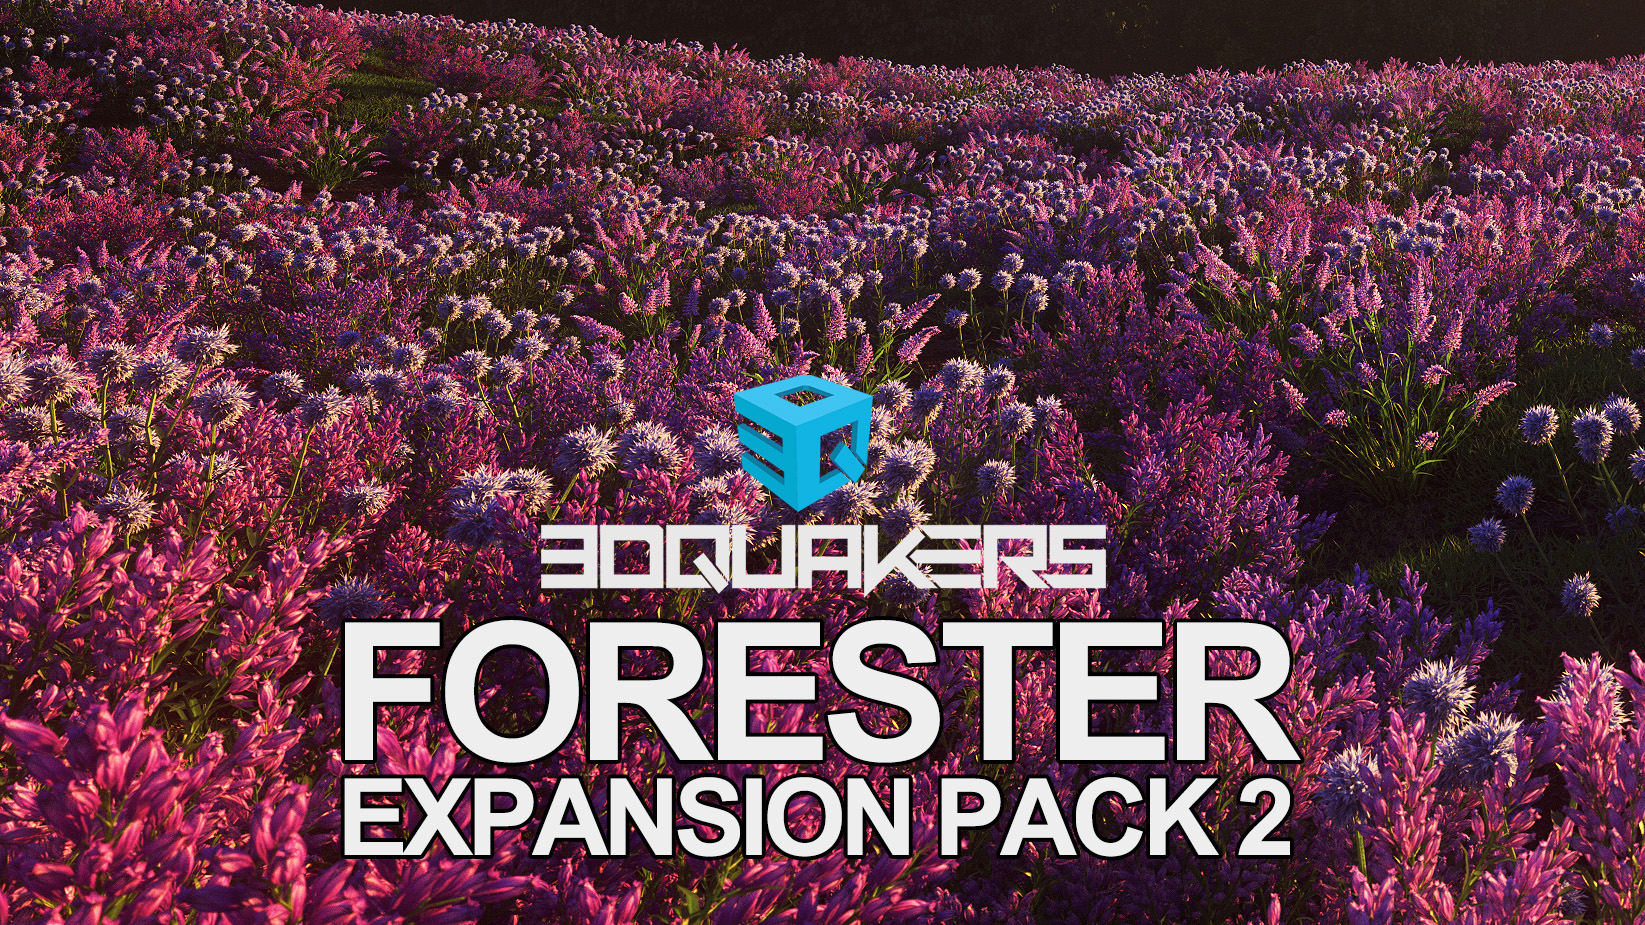 Forester Expansion 2 for Cinema 4D released! - 3DQUAKERS